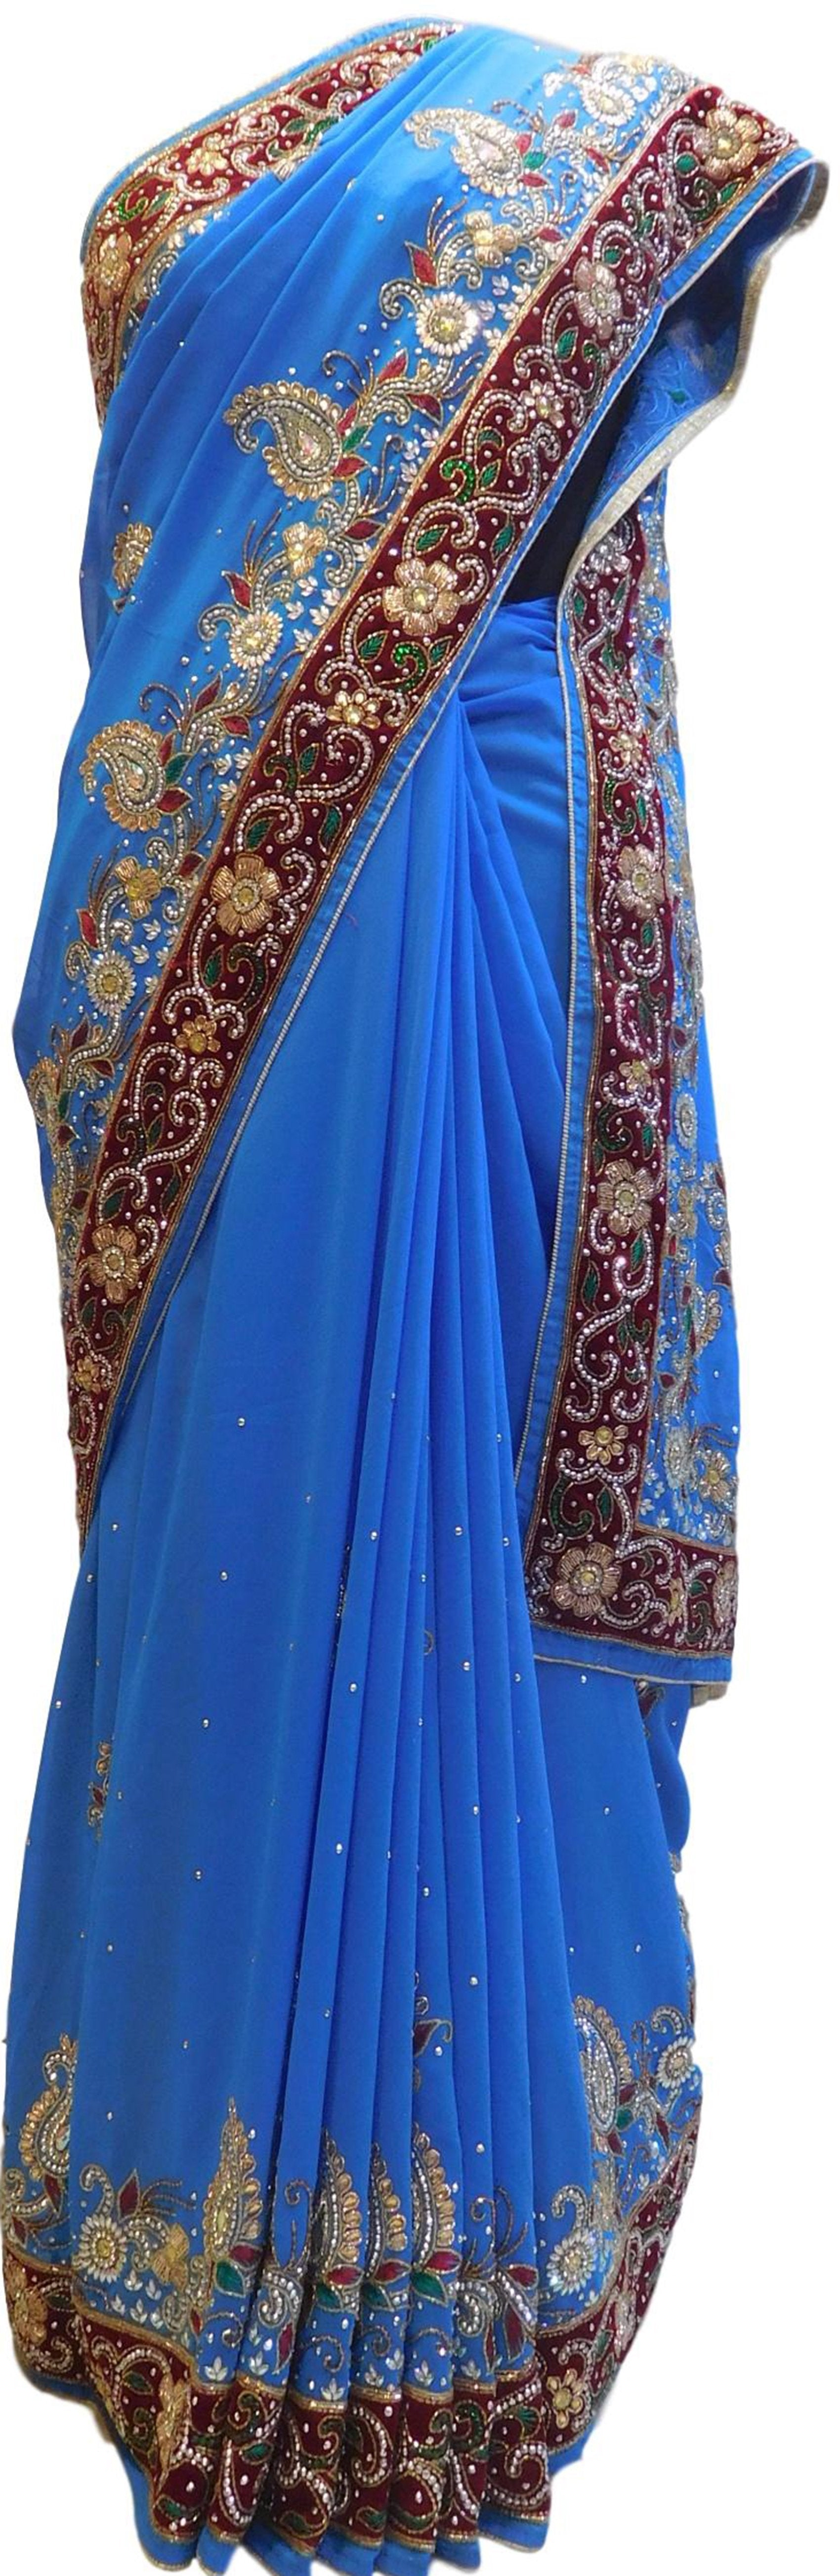 Blue Designer Wedding Partywear Georgette Bullion Cutdana Thread Stone Hand Embroidery Work Bridal Saree Sari